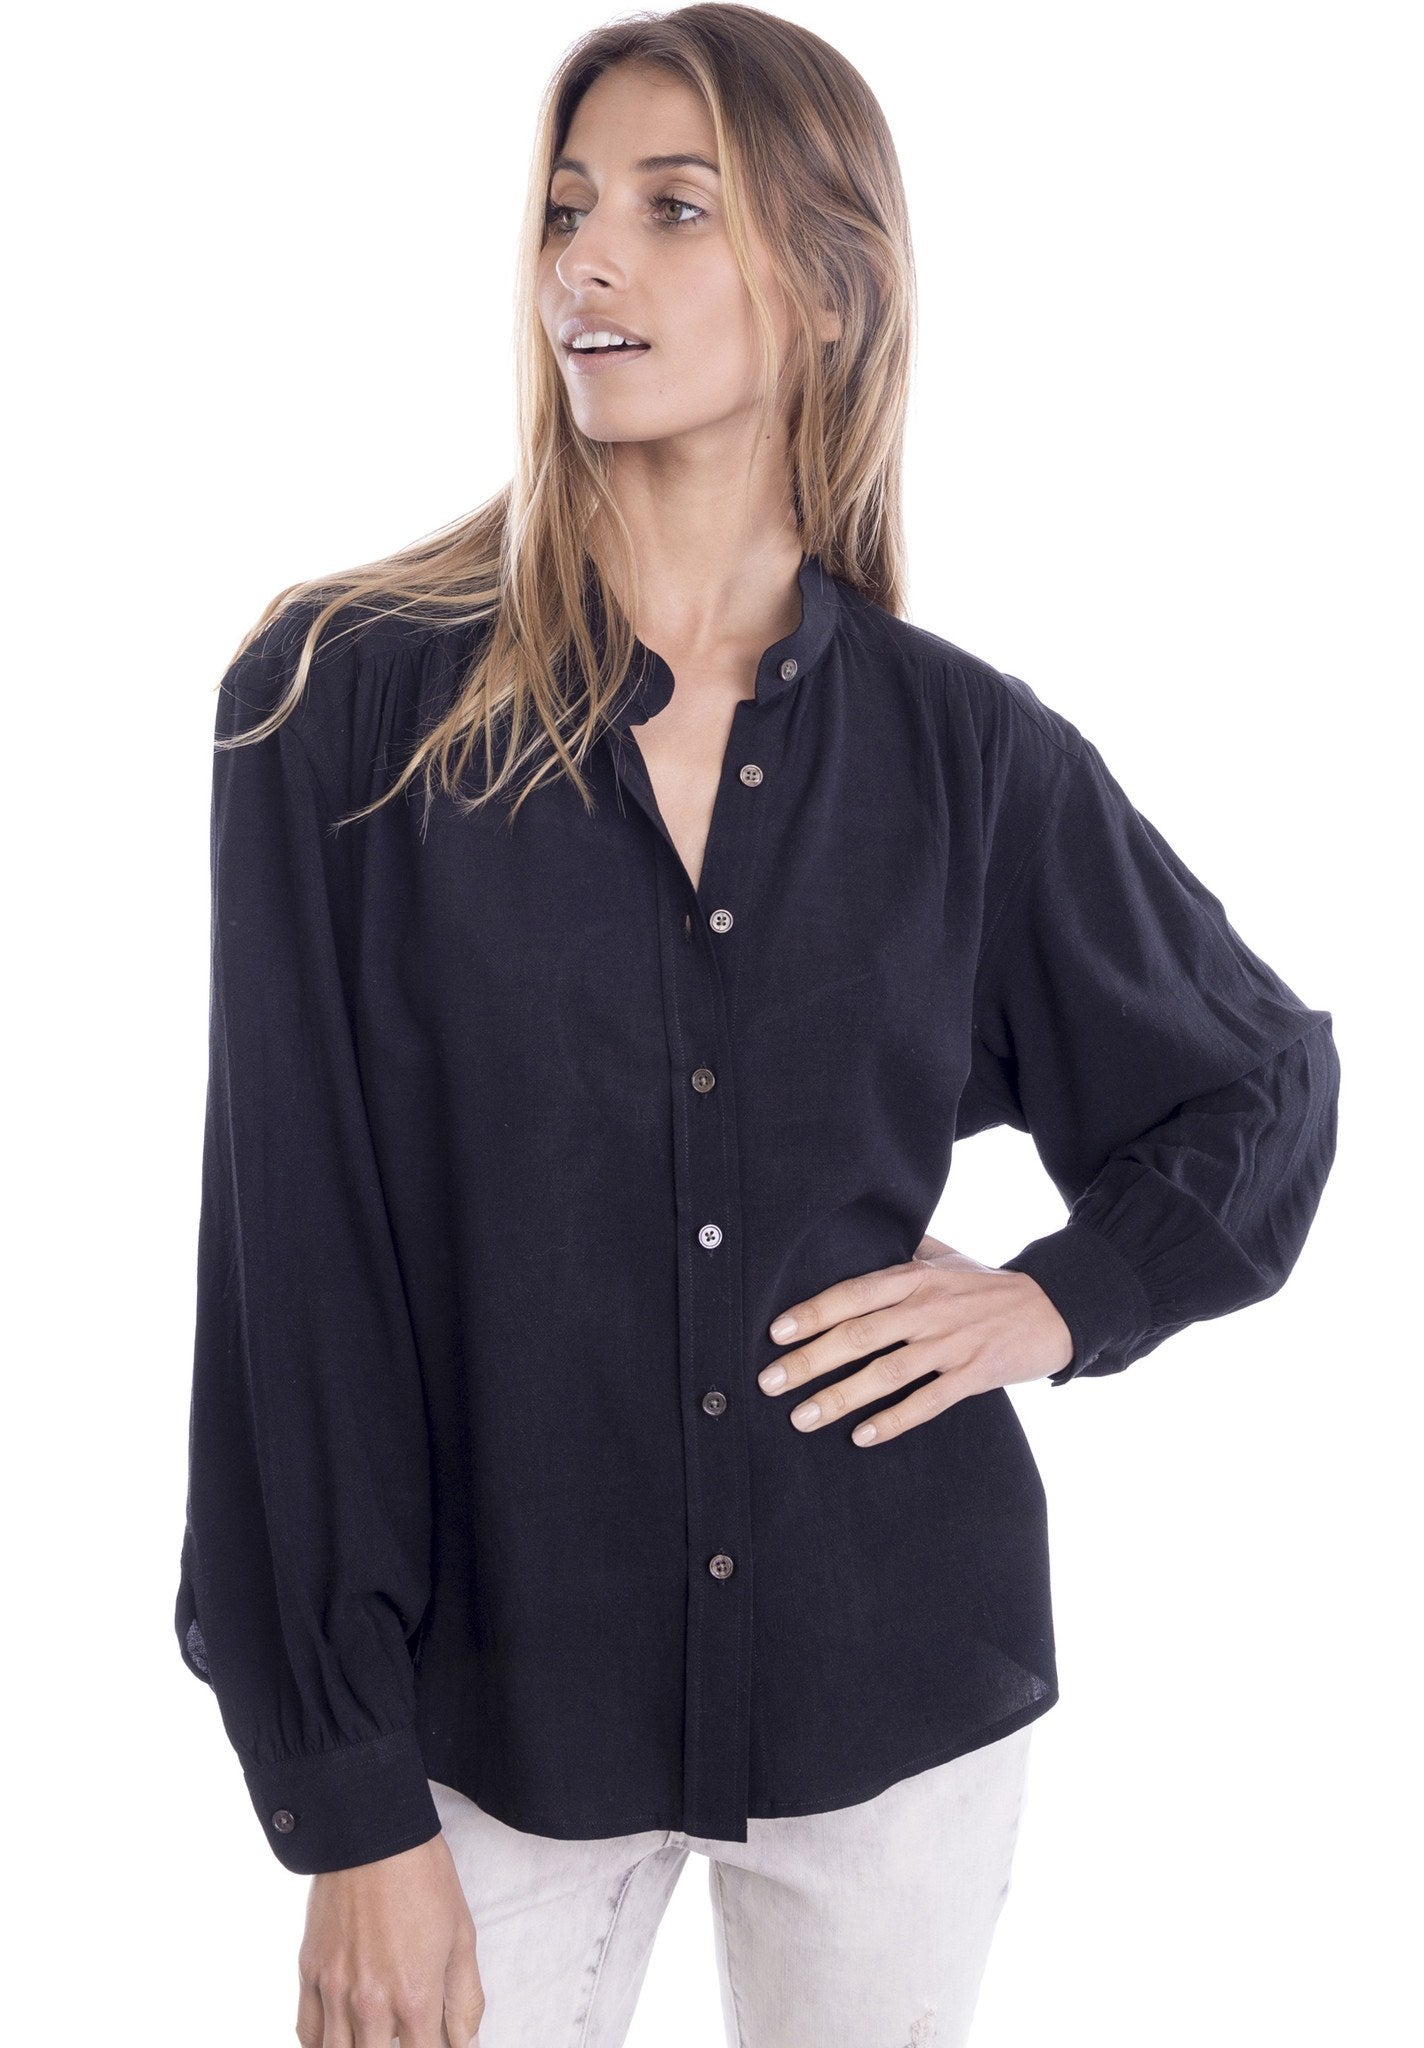 Poet Black Romantic Shirt